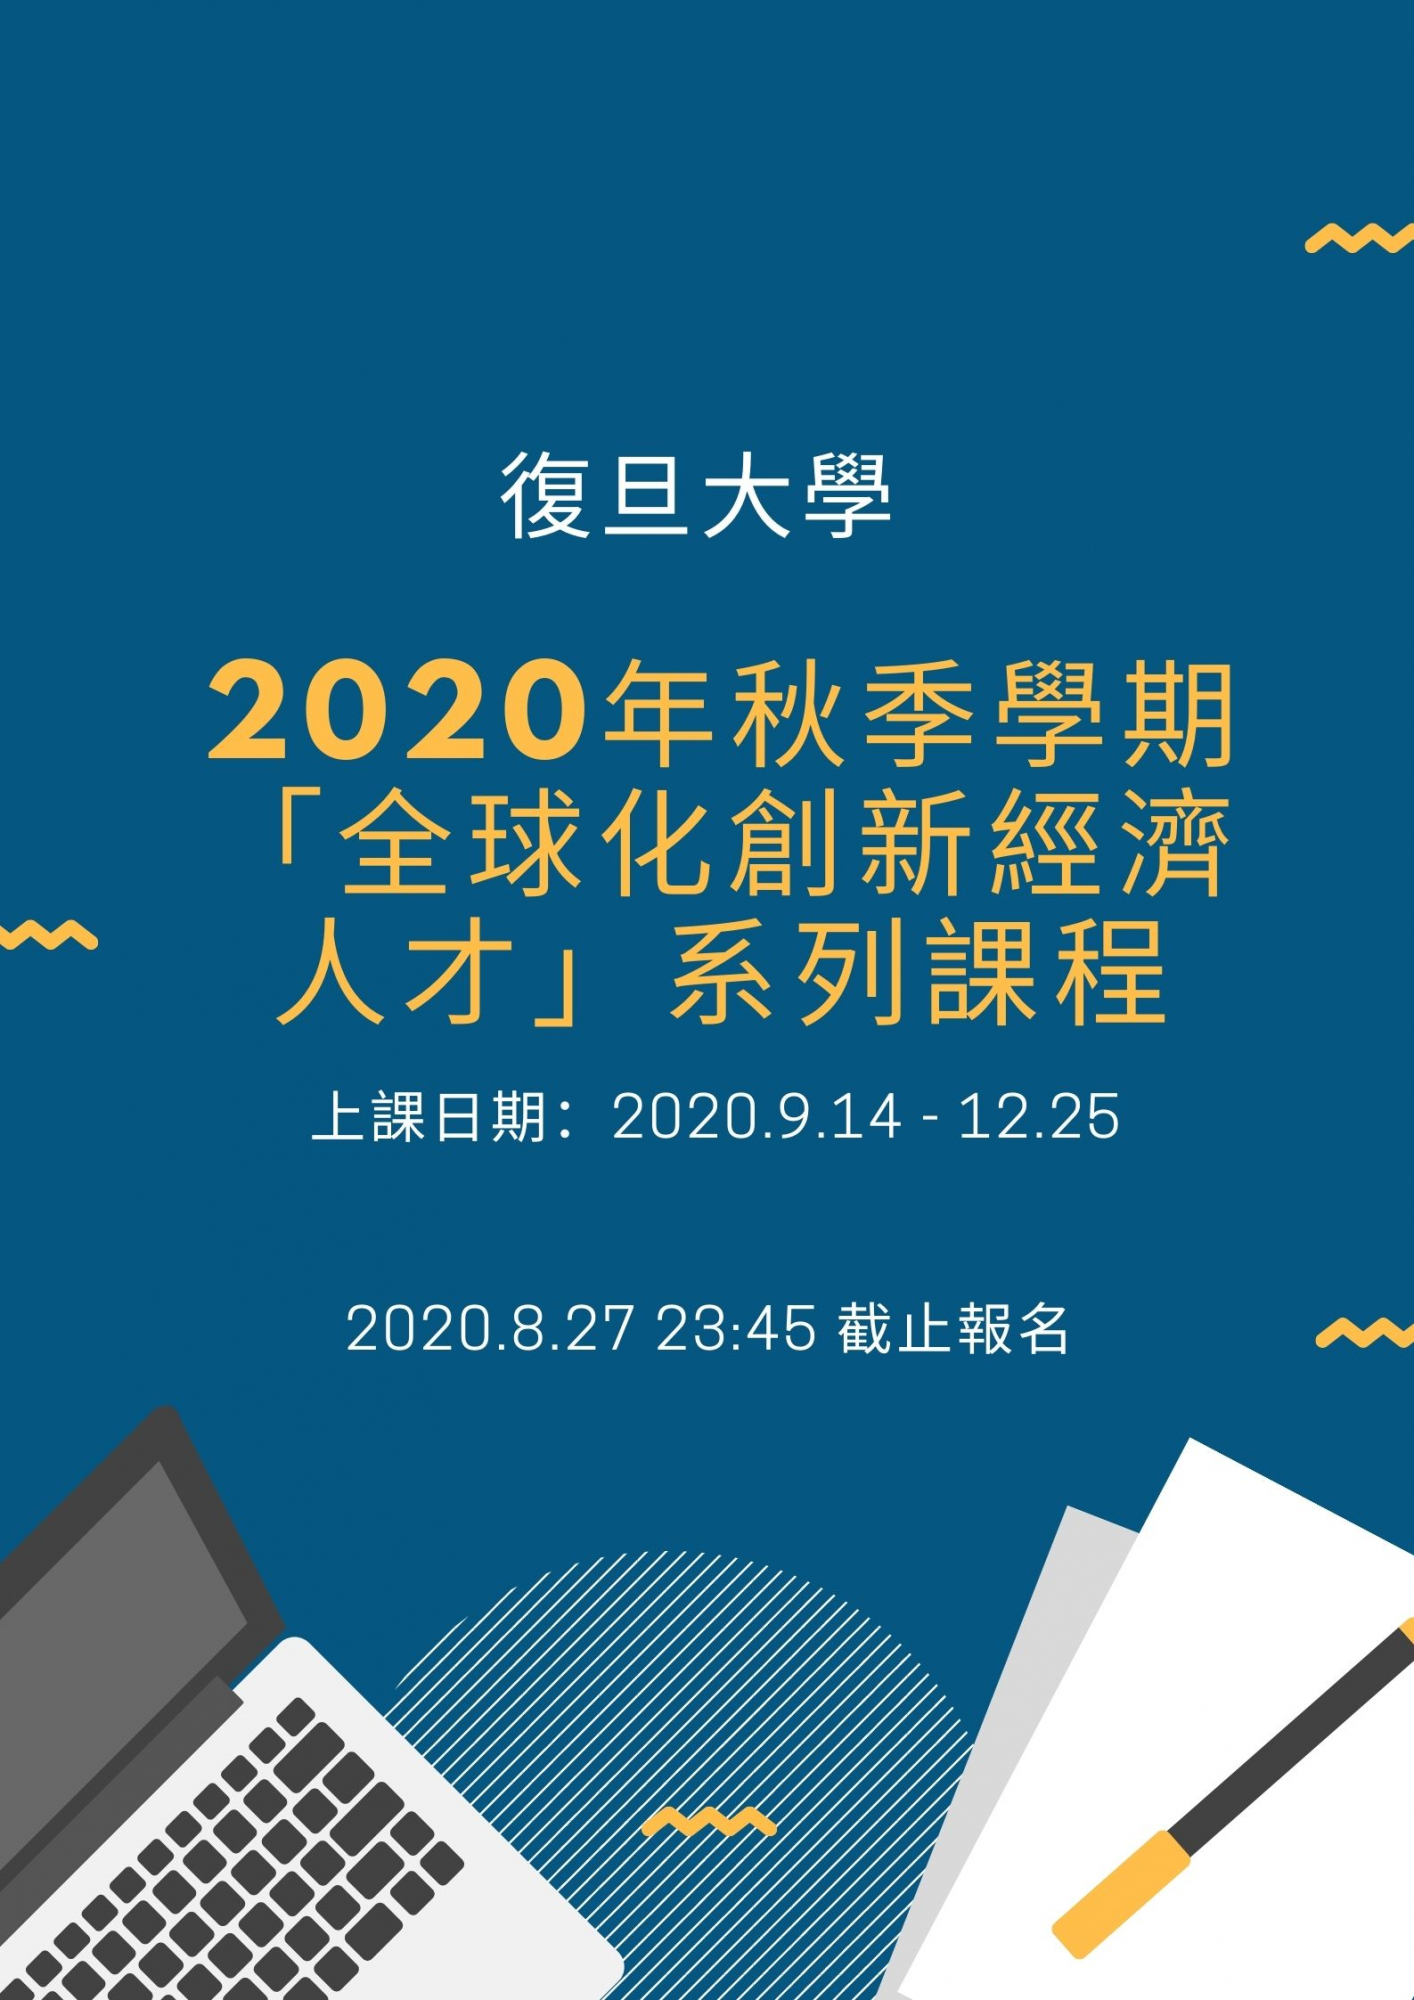 【Fudan University】2020 Autumn Semester Programme – Globalized Innovative Economic Talents